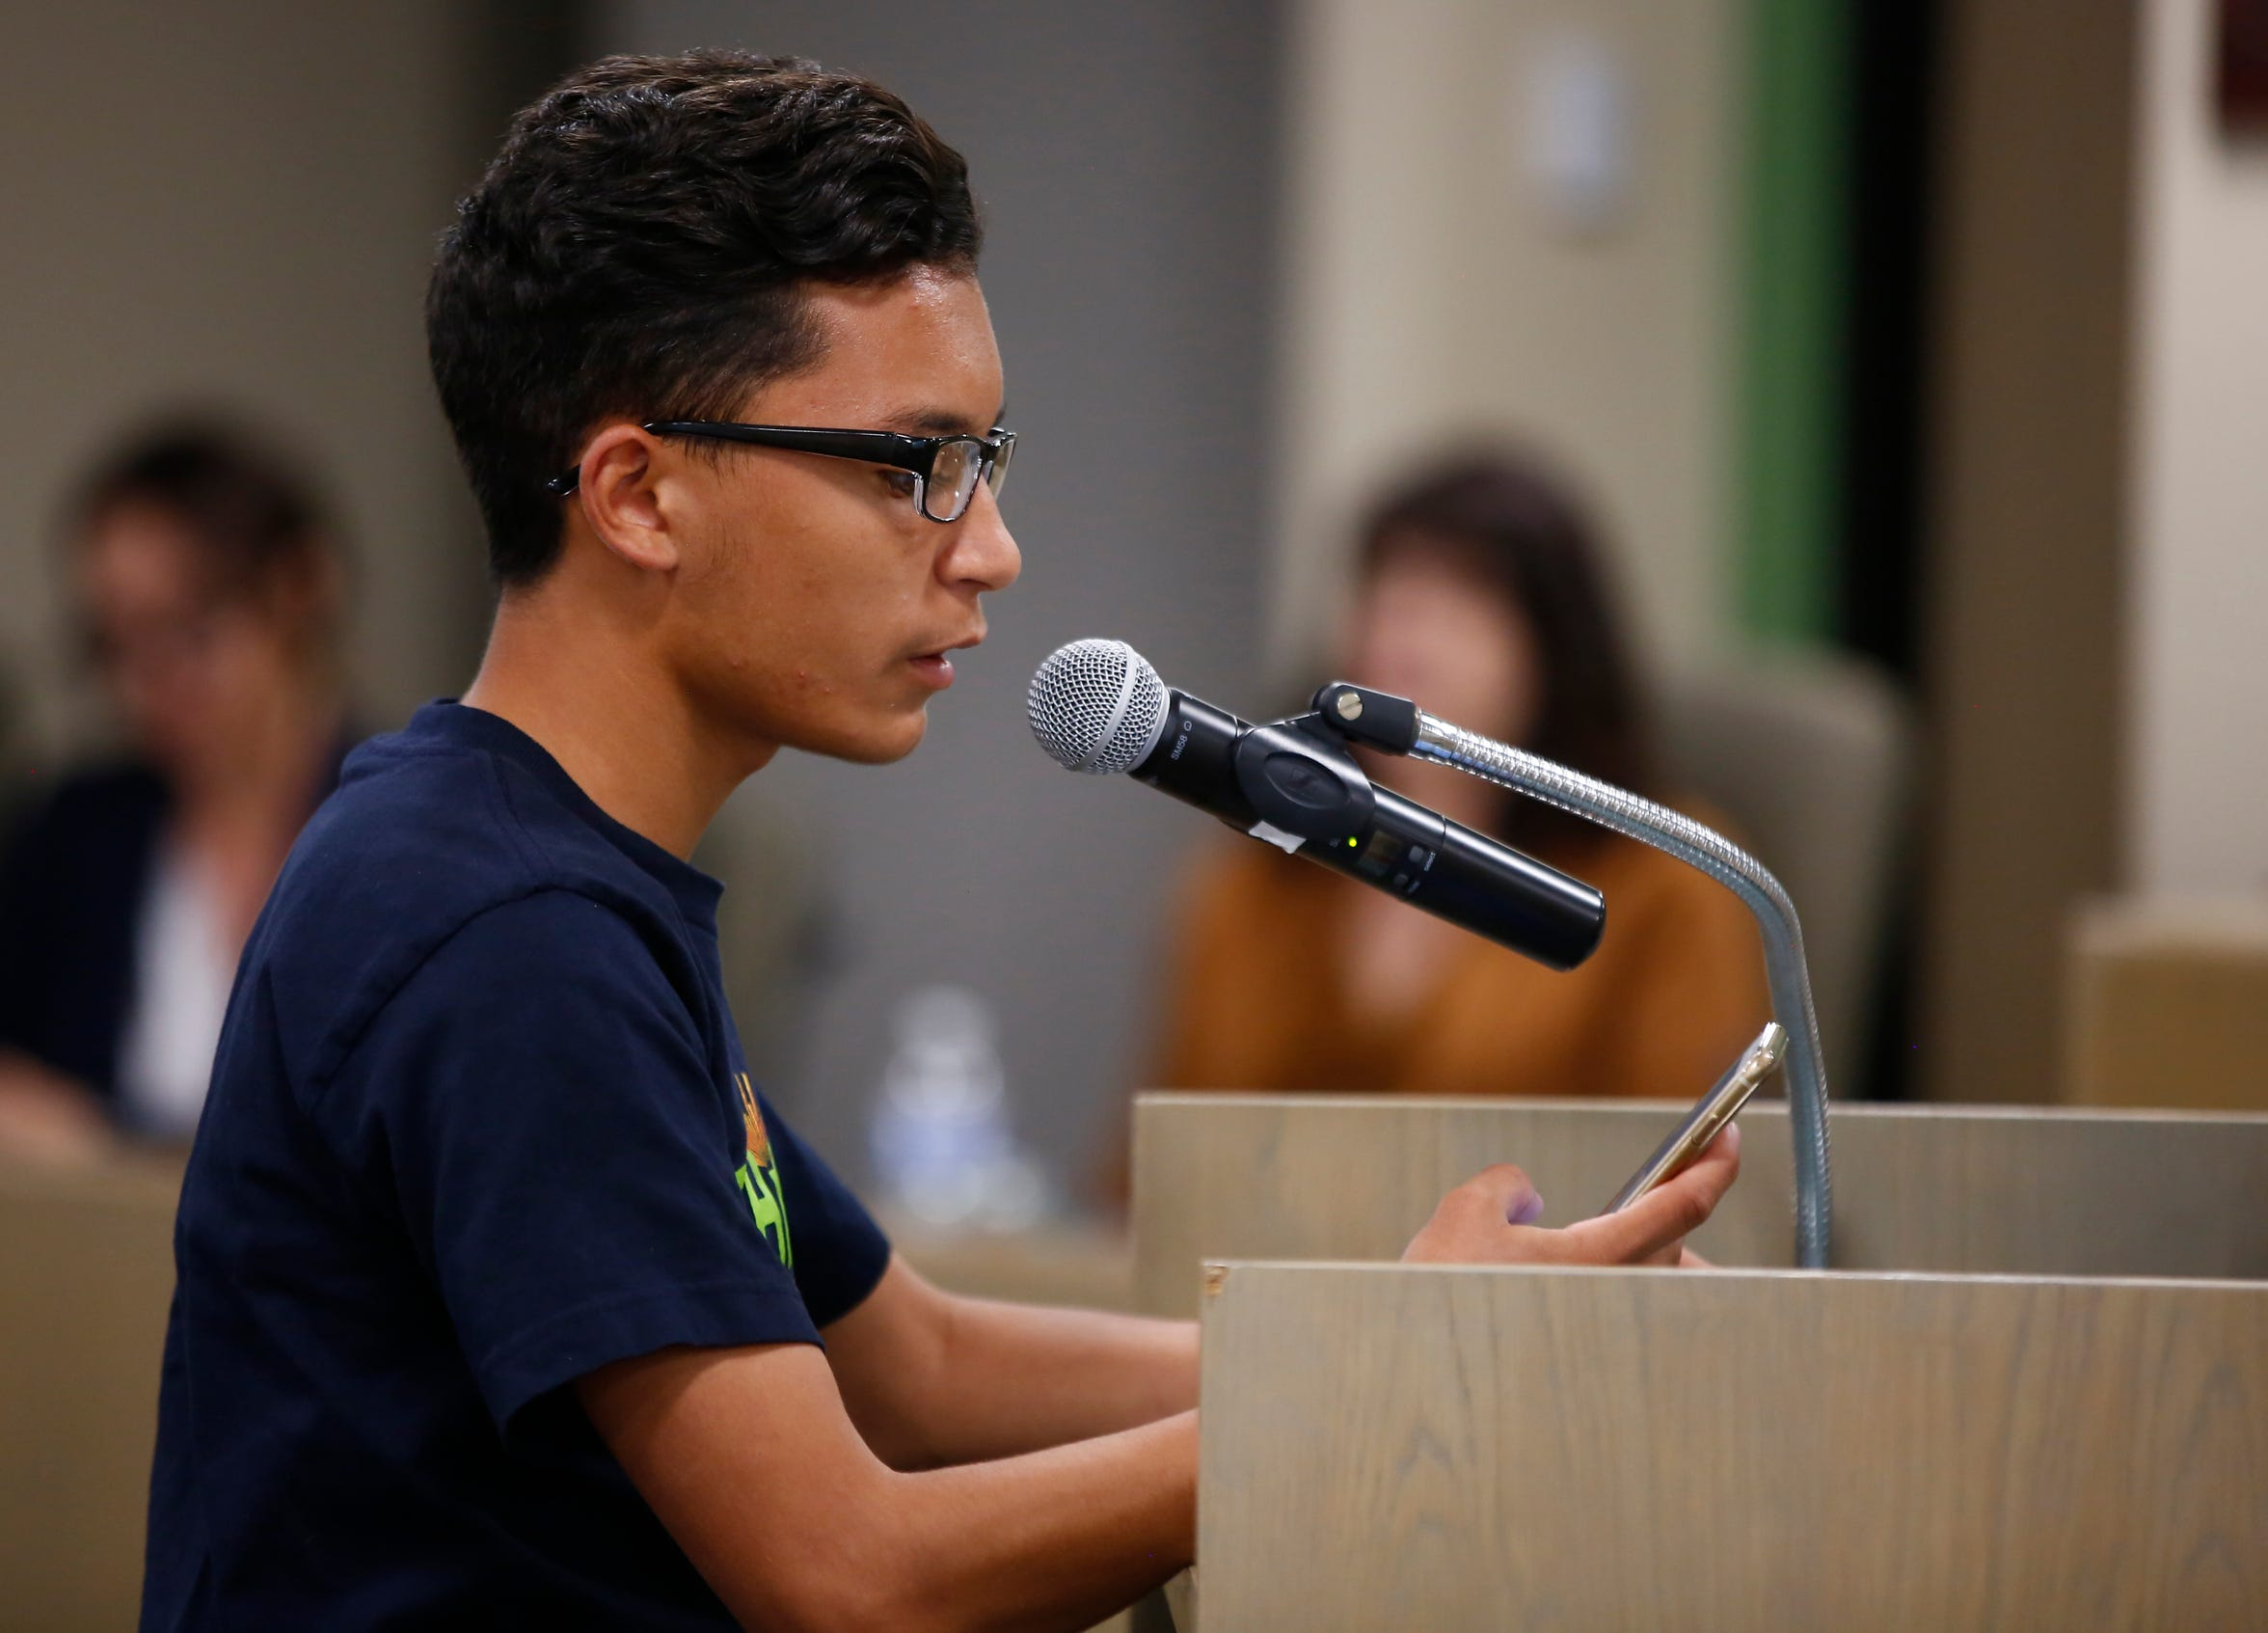 Levin Escarcega speaks in support of an electric school bus during a Phoenix Union High School District governing board meeting in Phoenix on April 11, 2019.